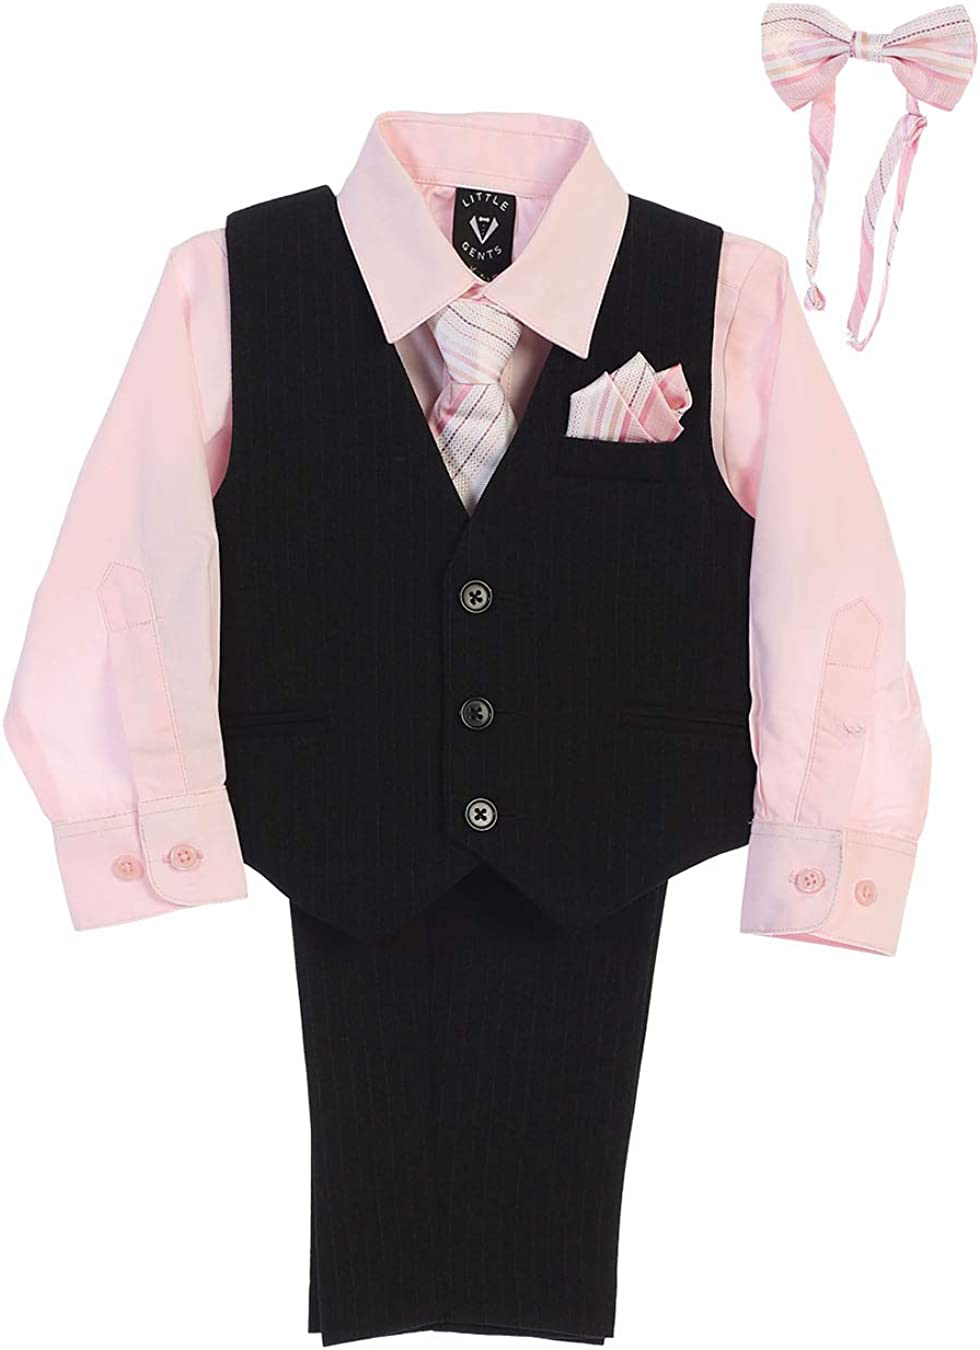 Little Gents Boys Easter Outfit, Boys Formal Dresswear Set, Ring Bearer Outfit for Boys, Church Clothes for Toddler Boy